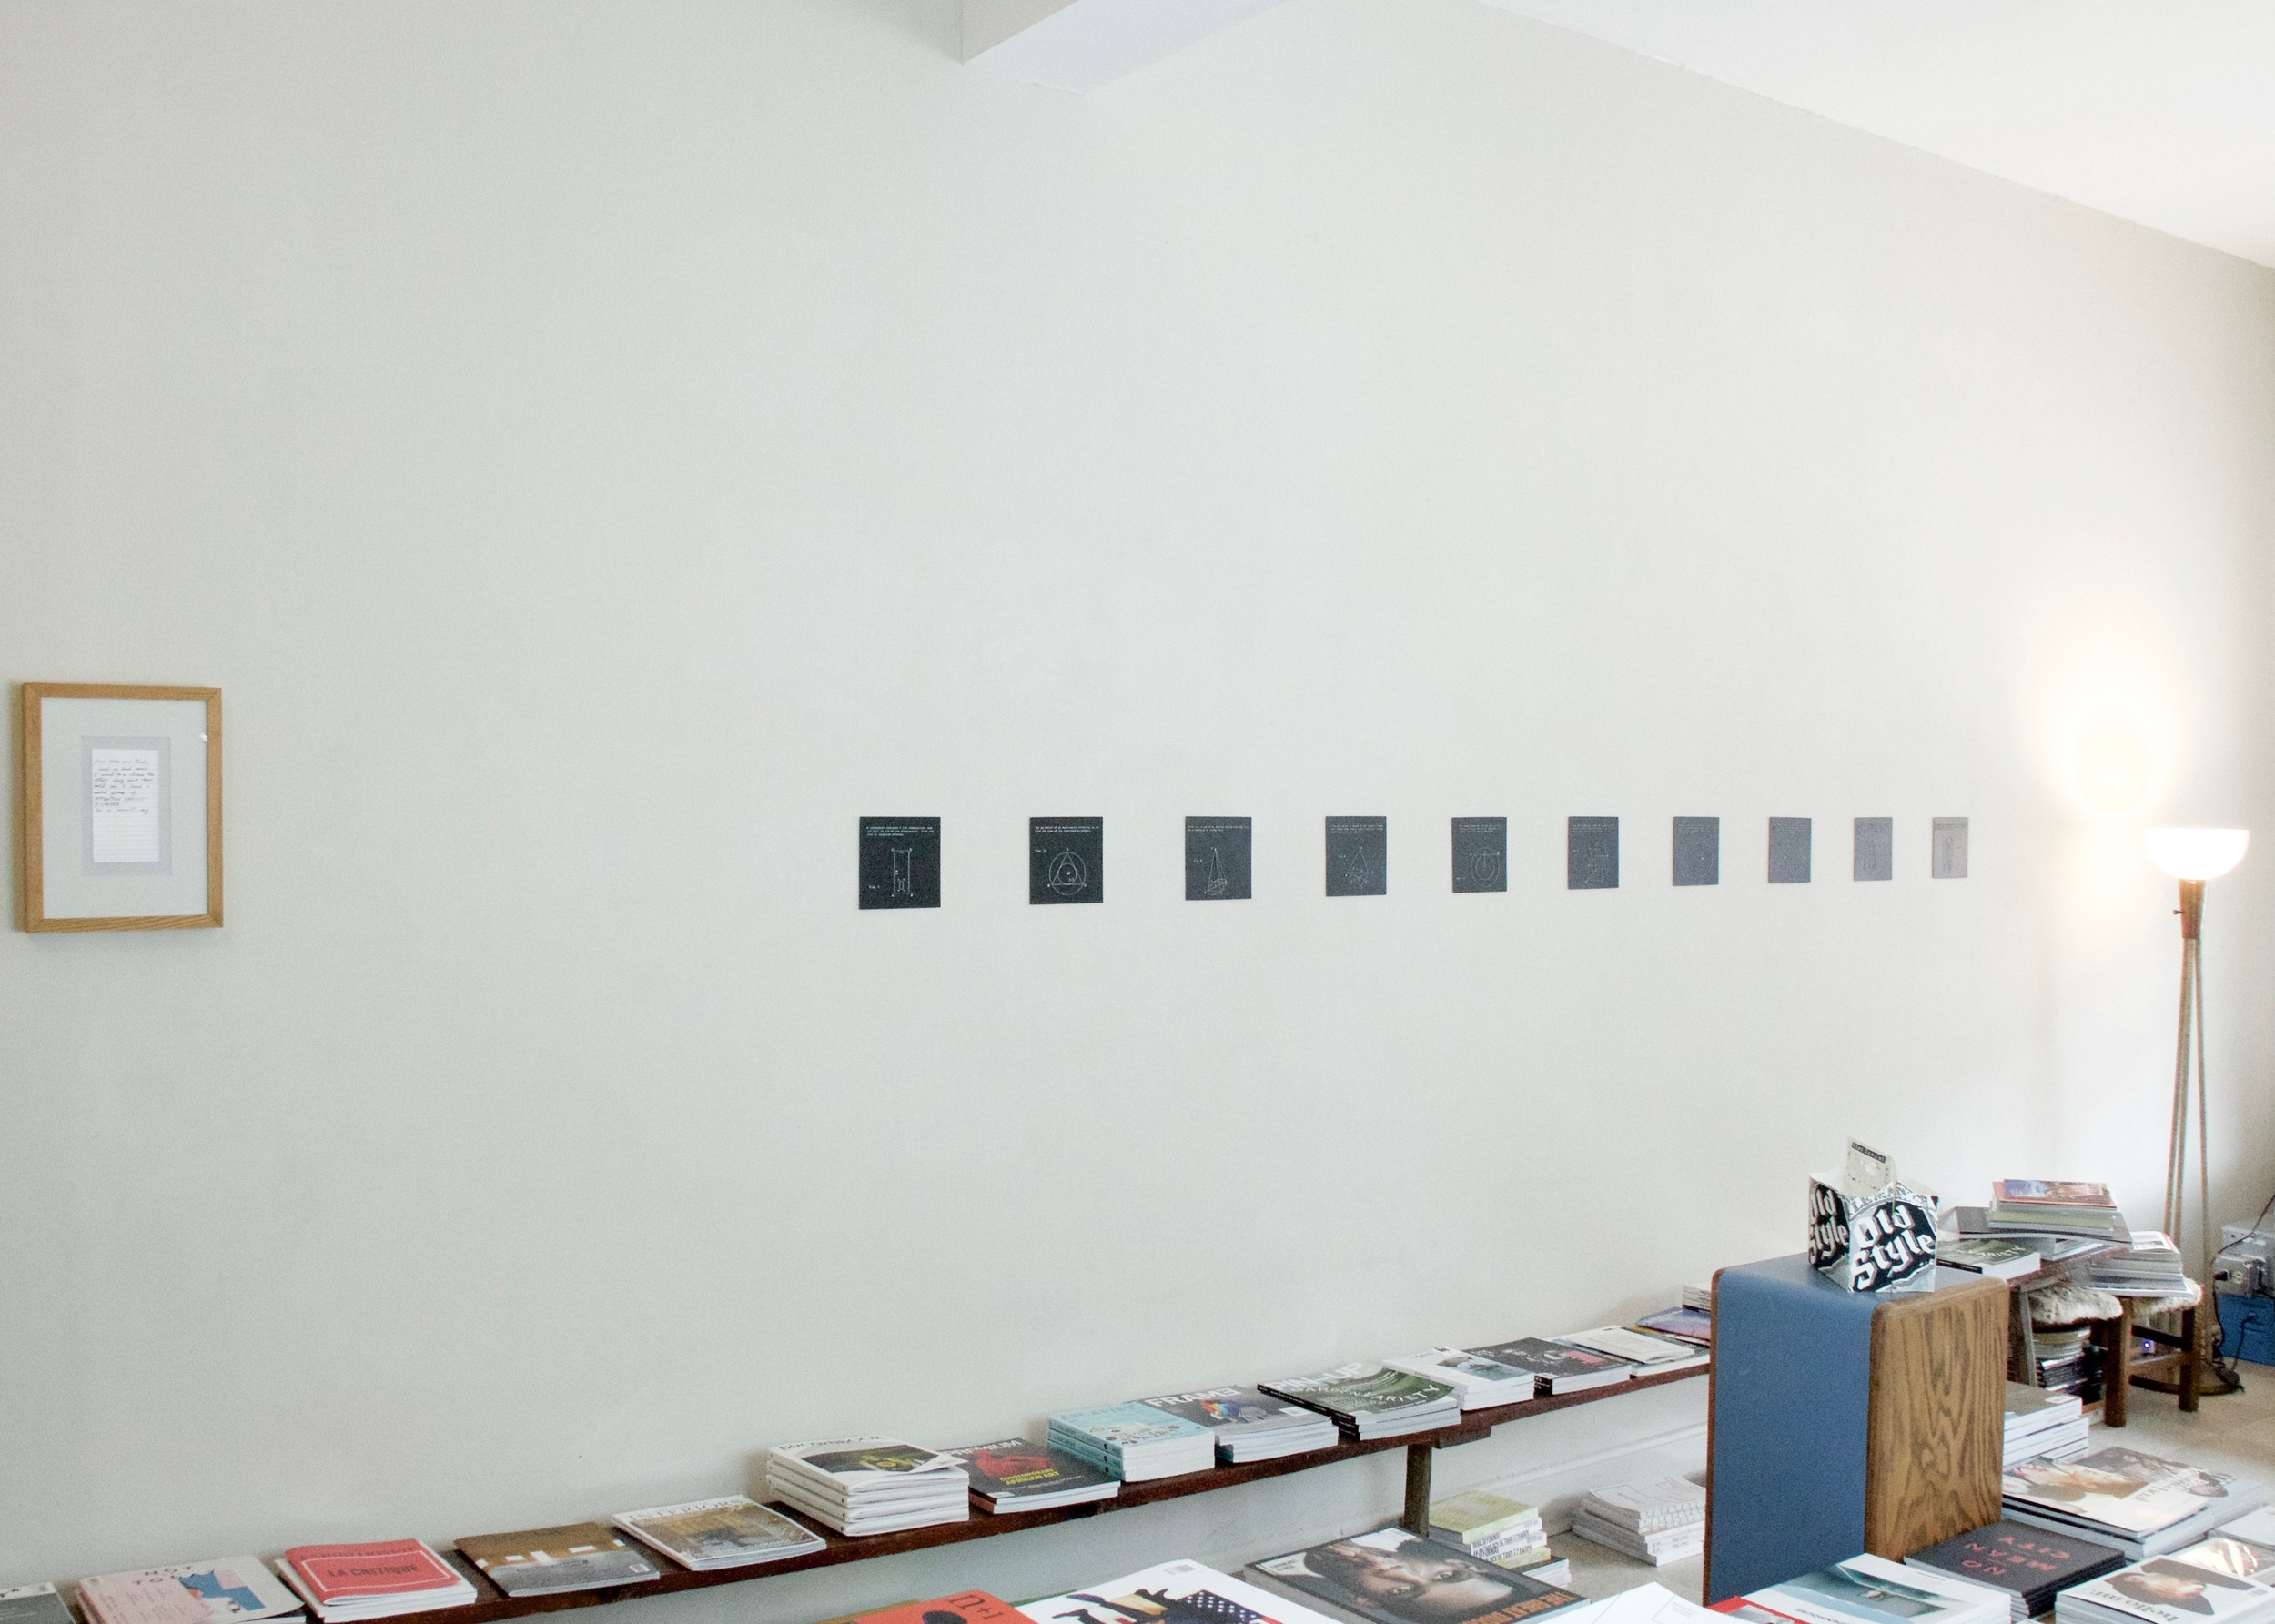 installation view,  Stephanie Brooks for Syntax Season , 2016